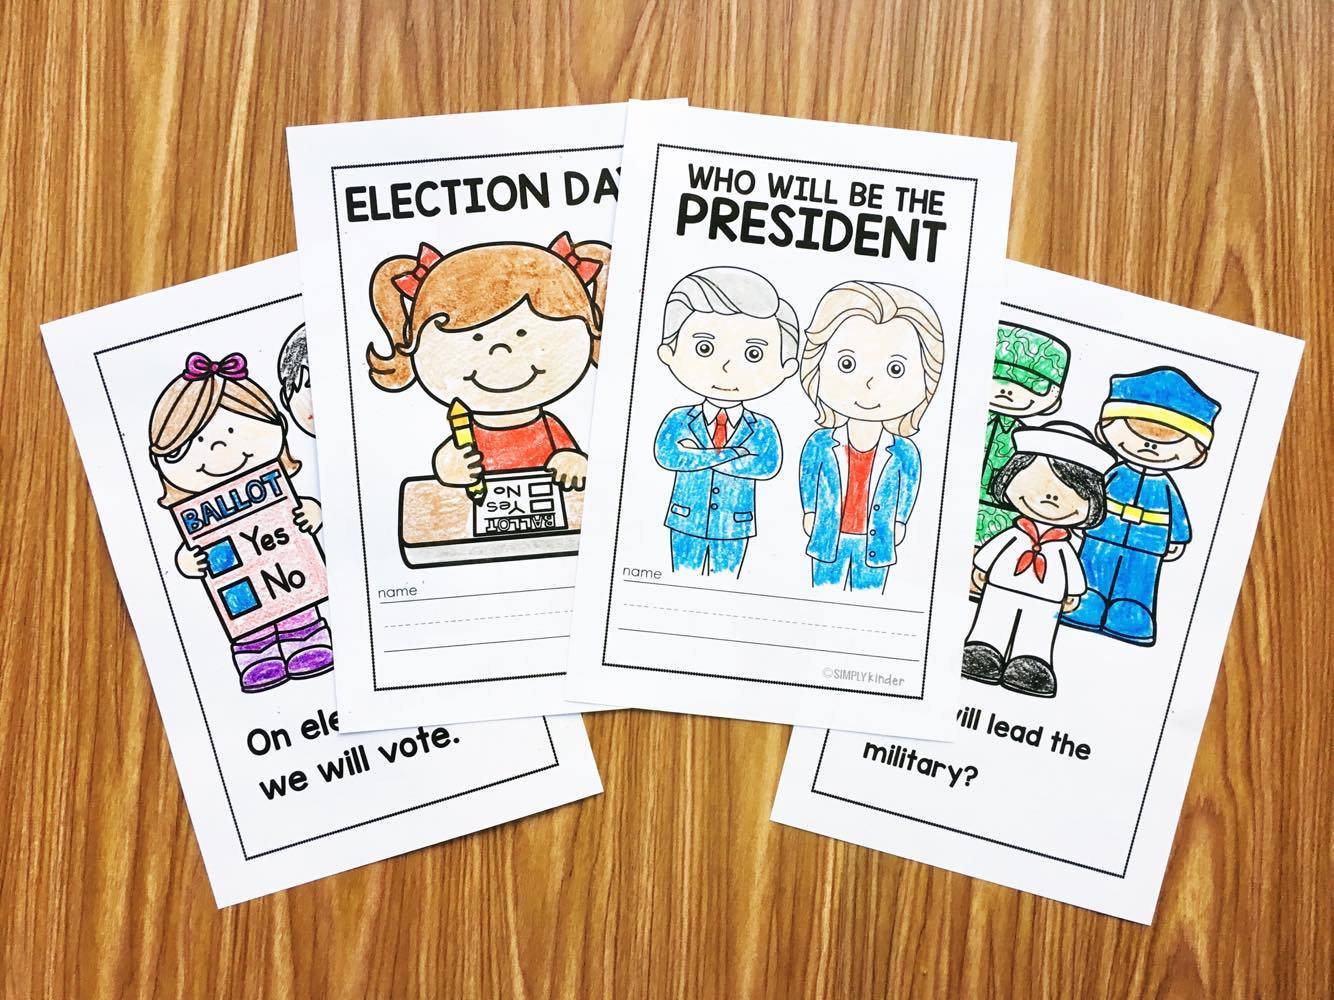 Election Readers for Preschool, Kindergarten, and First Grades. Easy to read sentences and appropriate content for little learners.